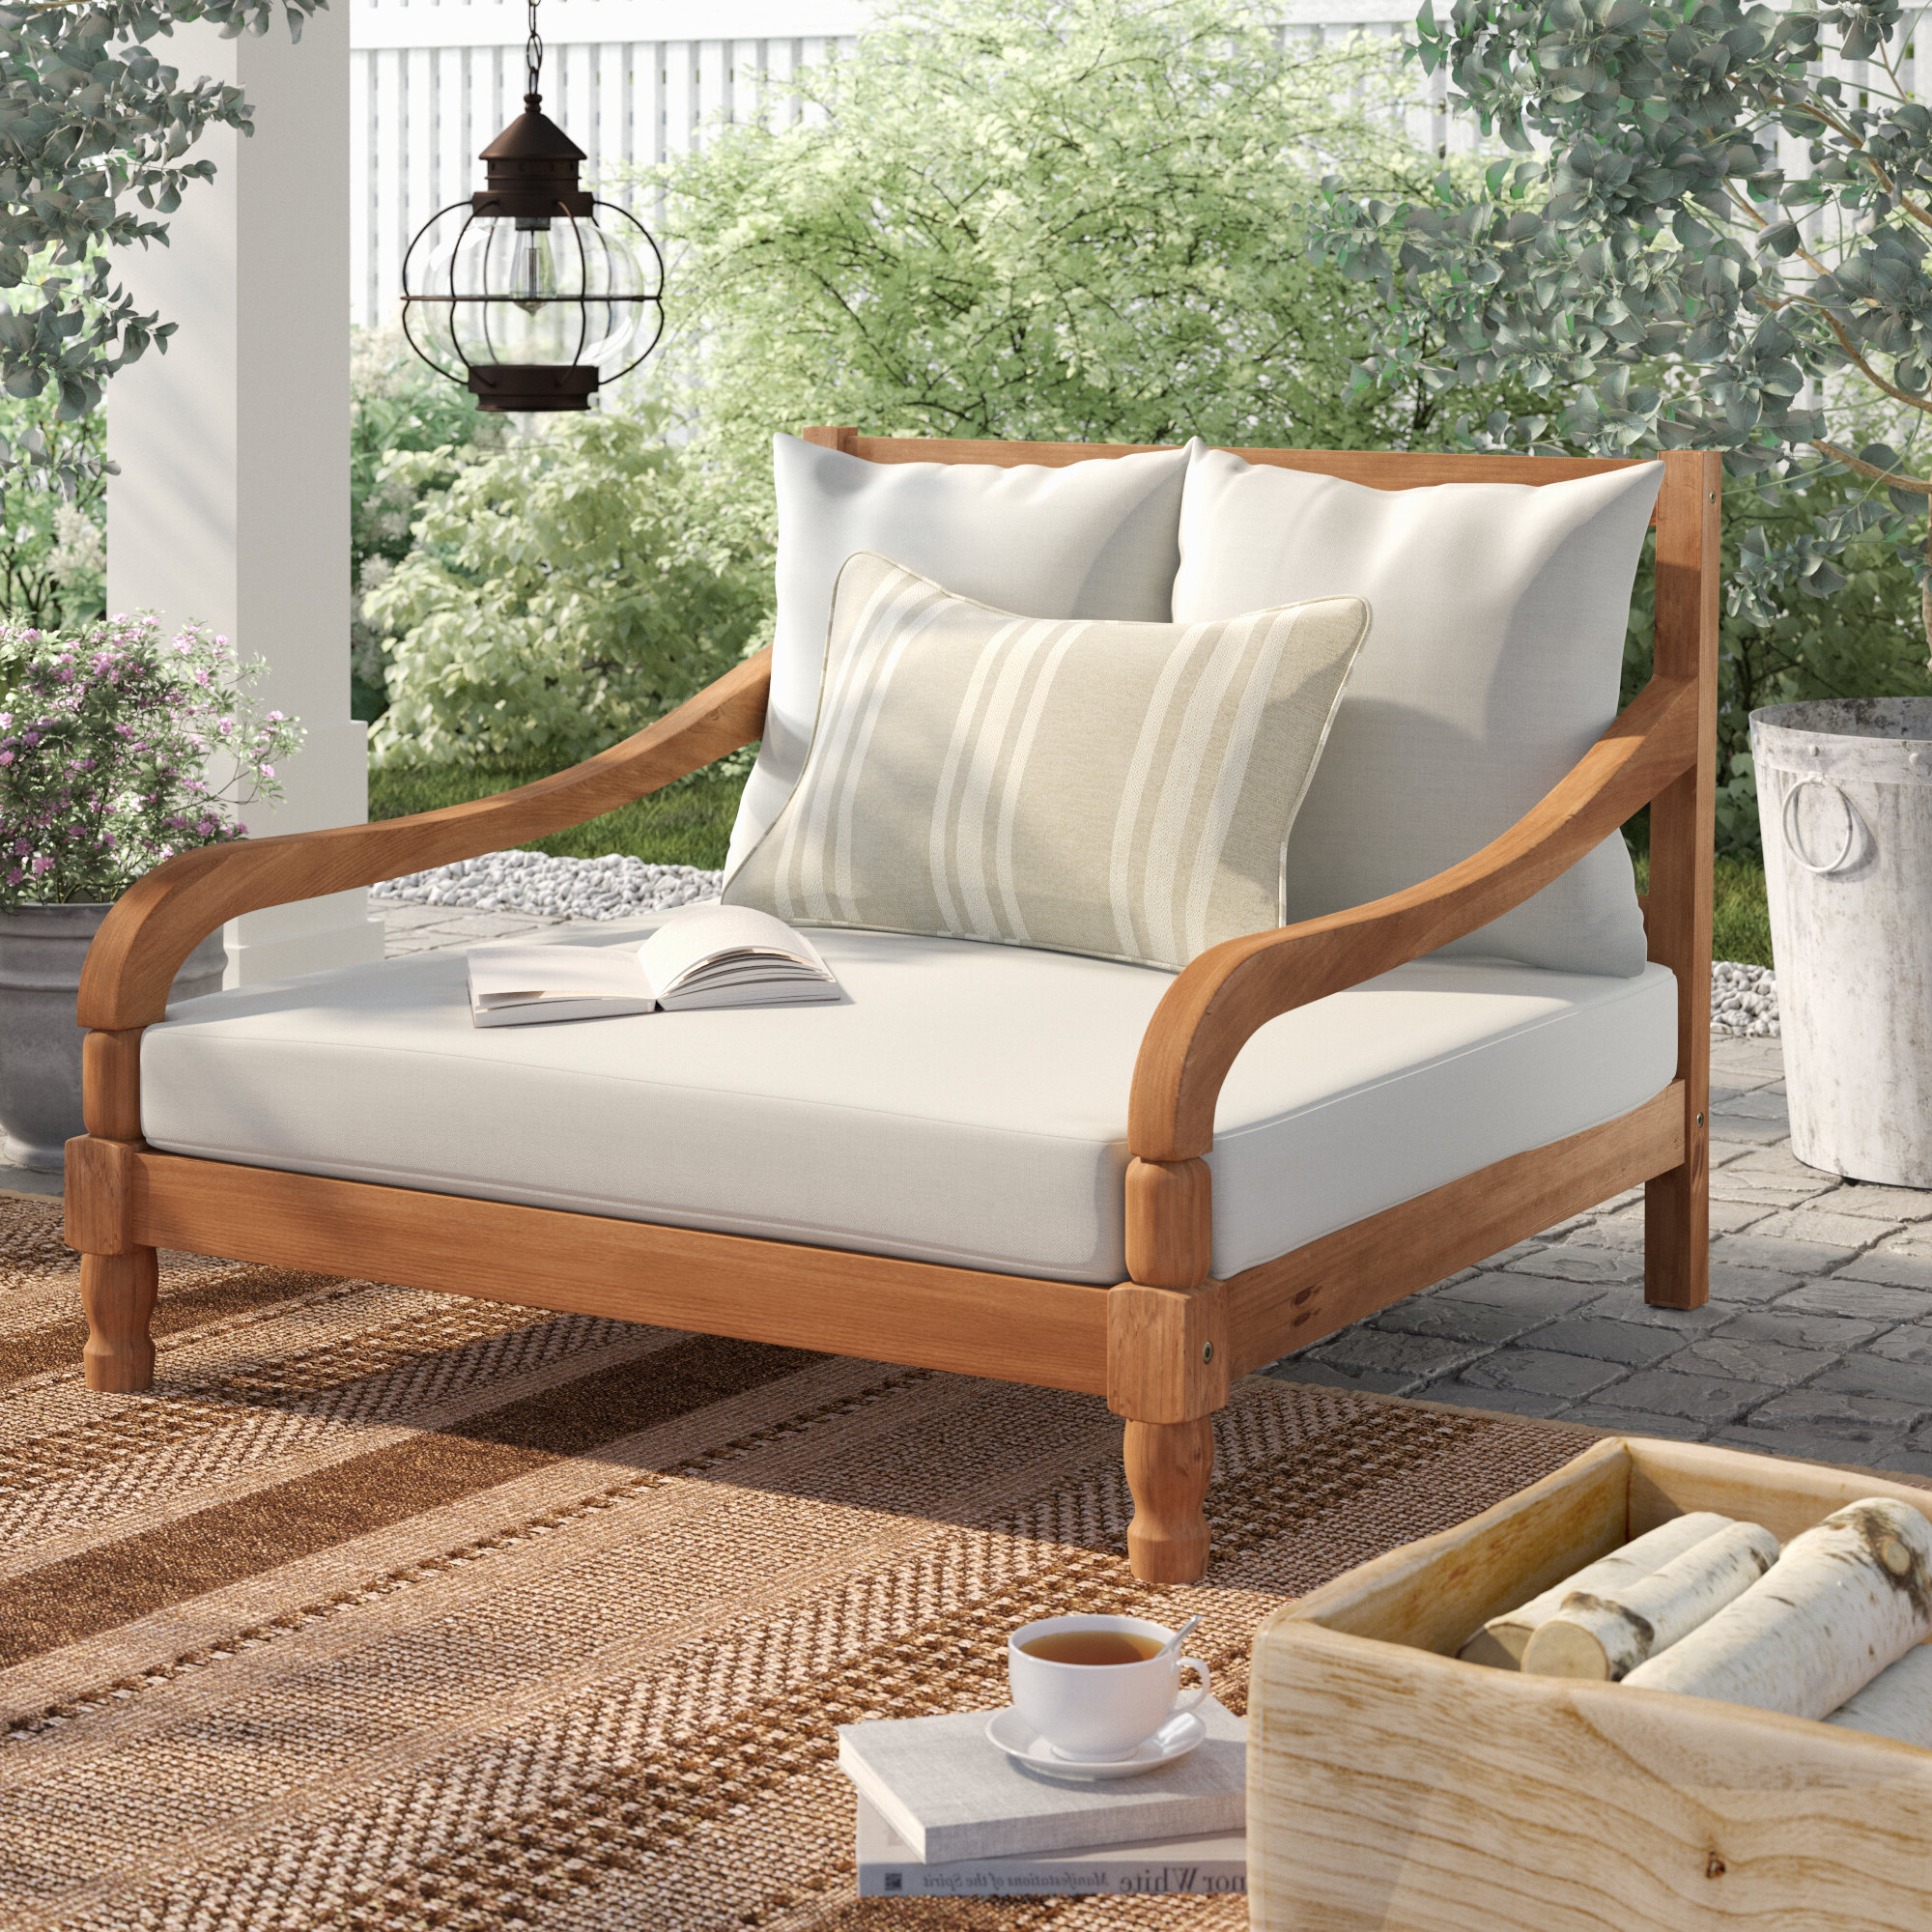 Most Popular Wiest Double Chaise Lounge With Cushion Intended For Outdoor Rustic Acacia Wood Chaise Lounges With Wicker Seat (View 23 of 25)